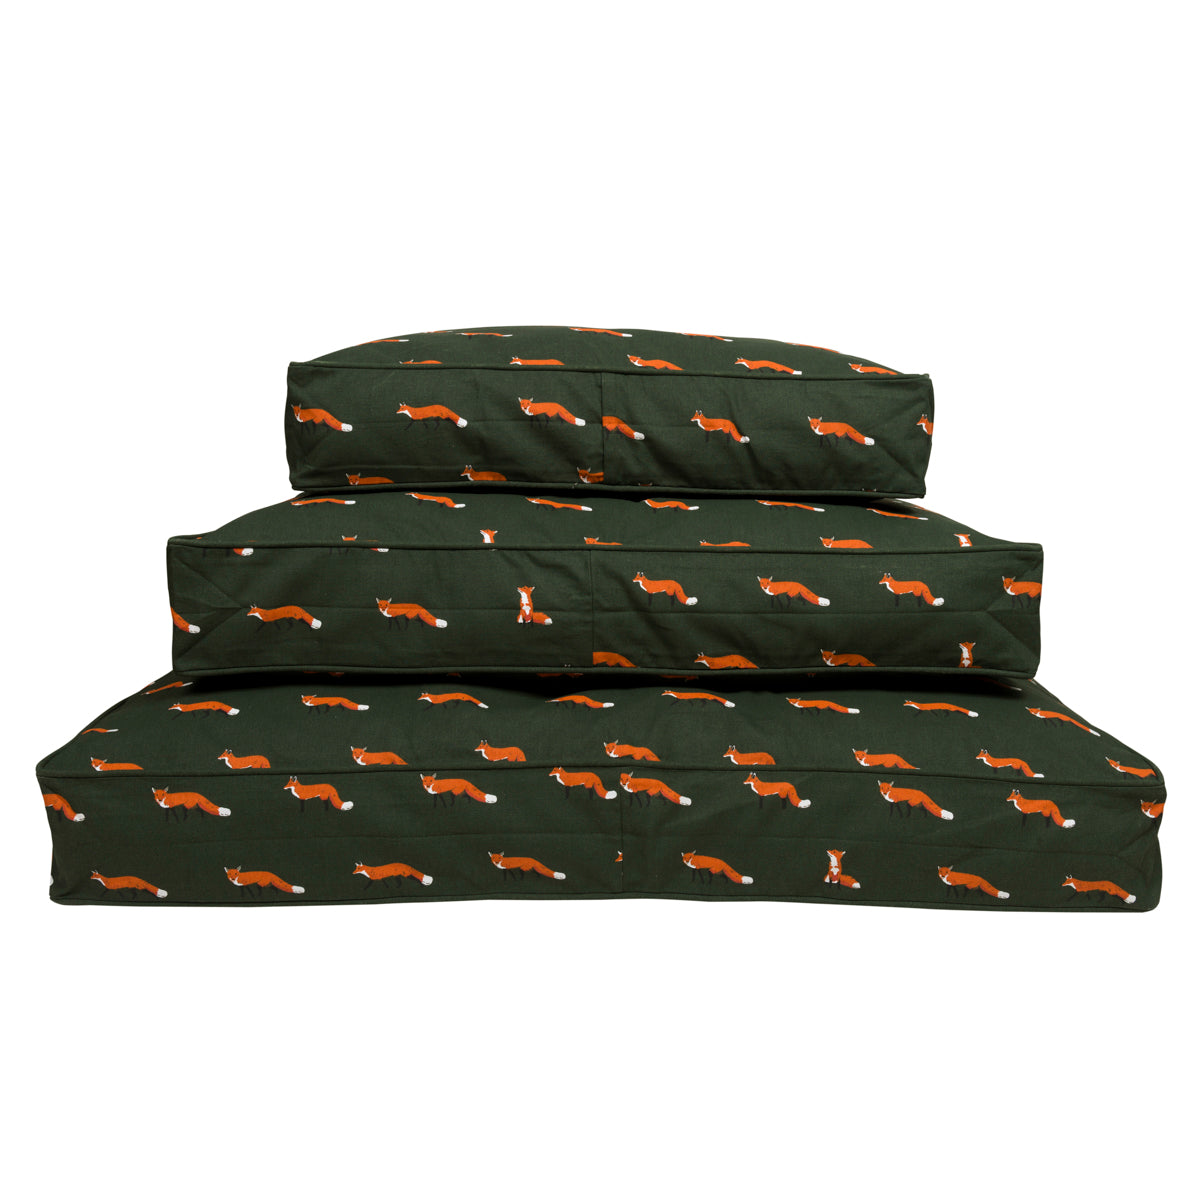 Pet Mattress - Large - Foxes